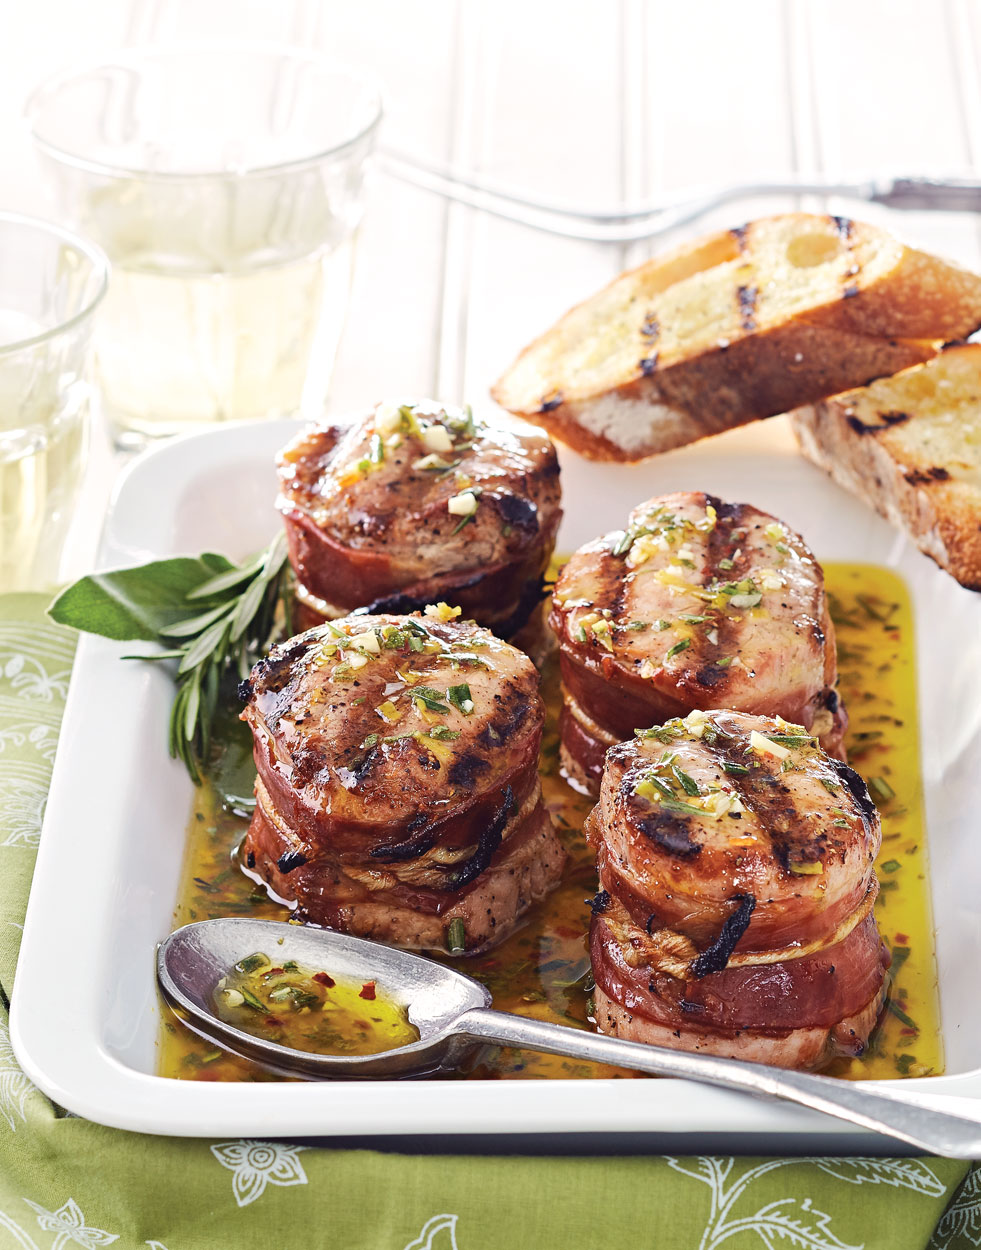 Prosciutto Wrapped Pork Medallions With Fiorentina Sauce Recipe